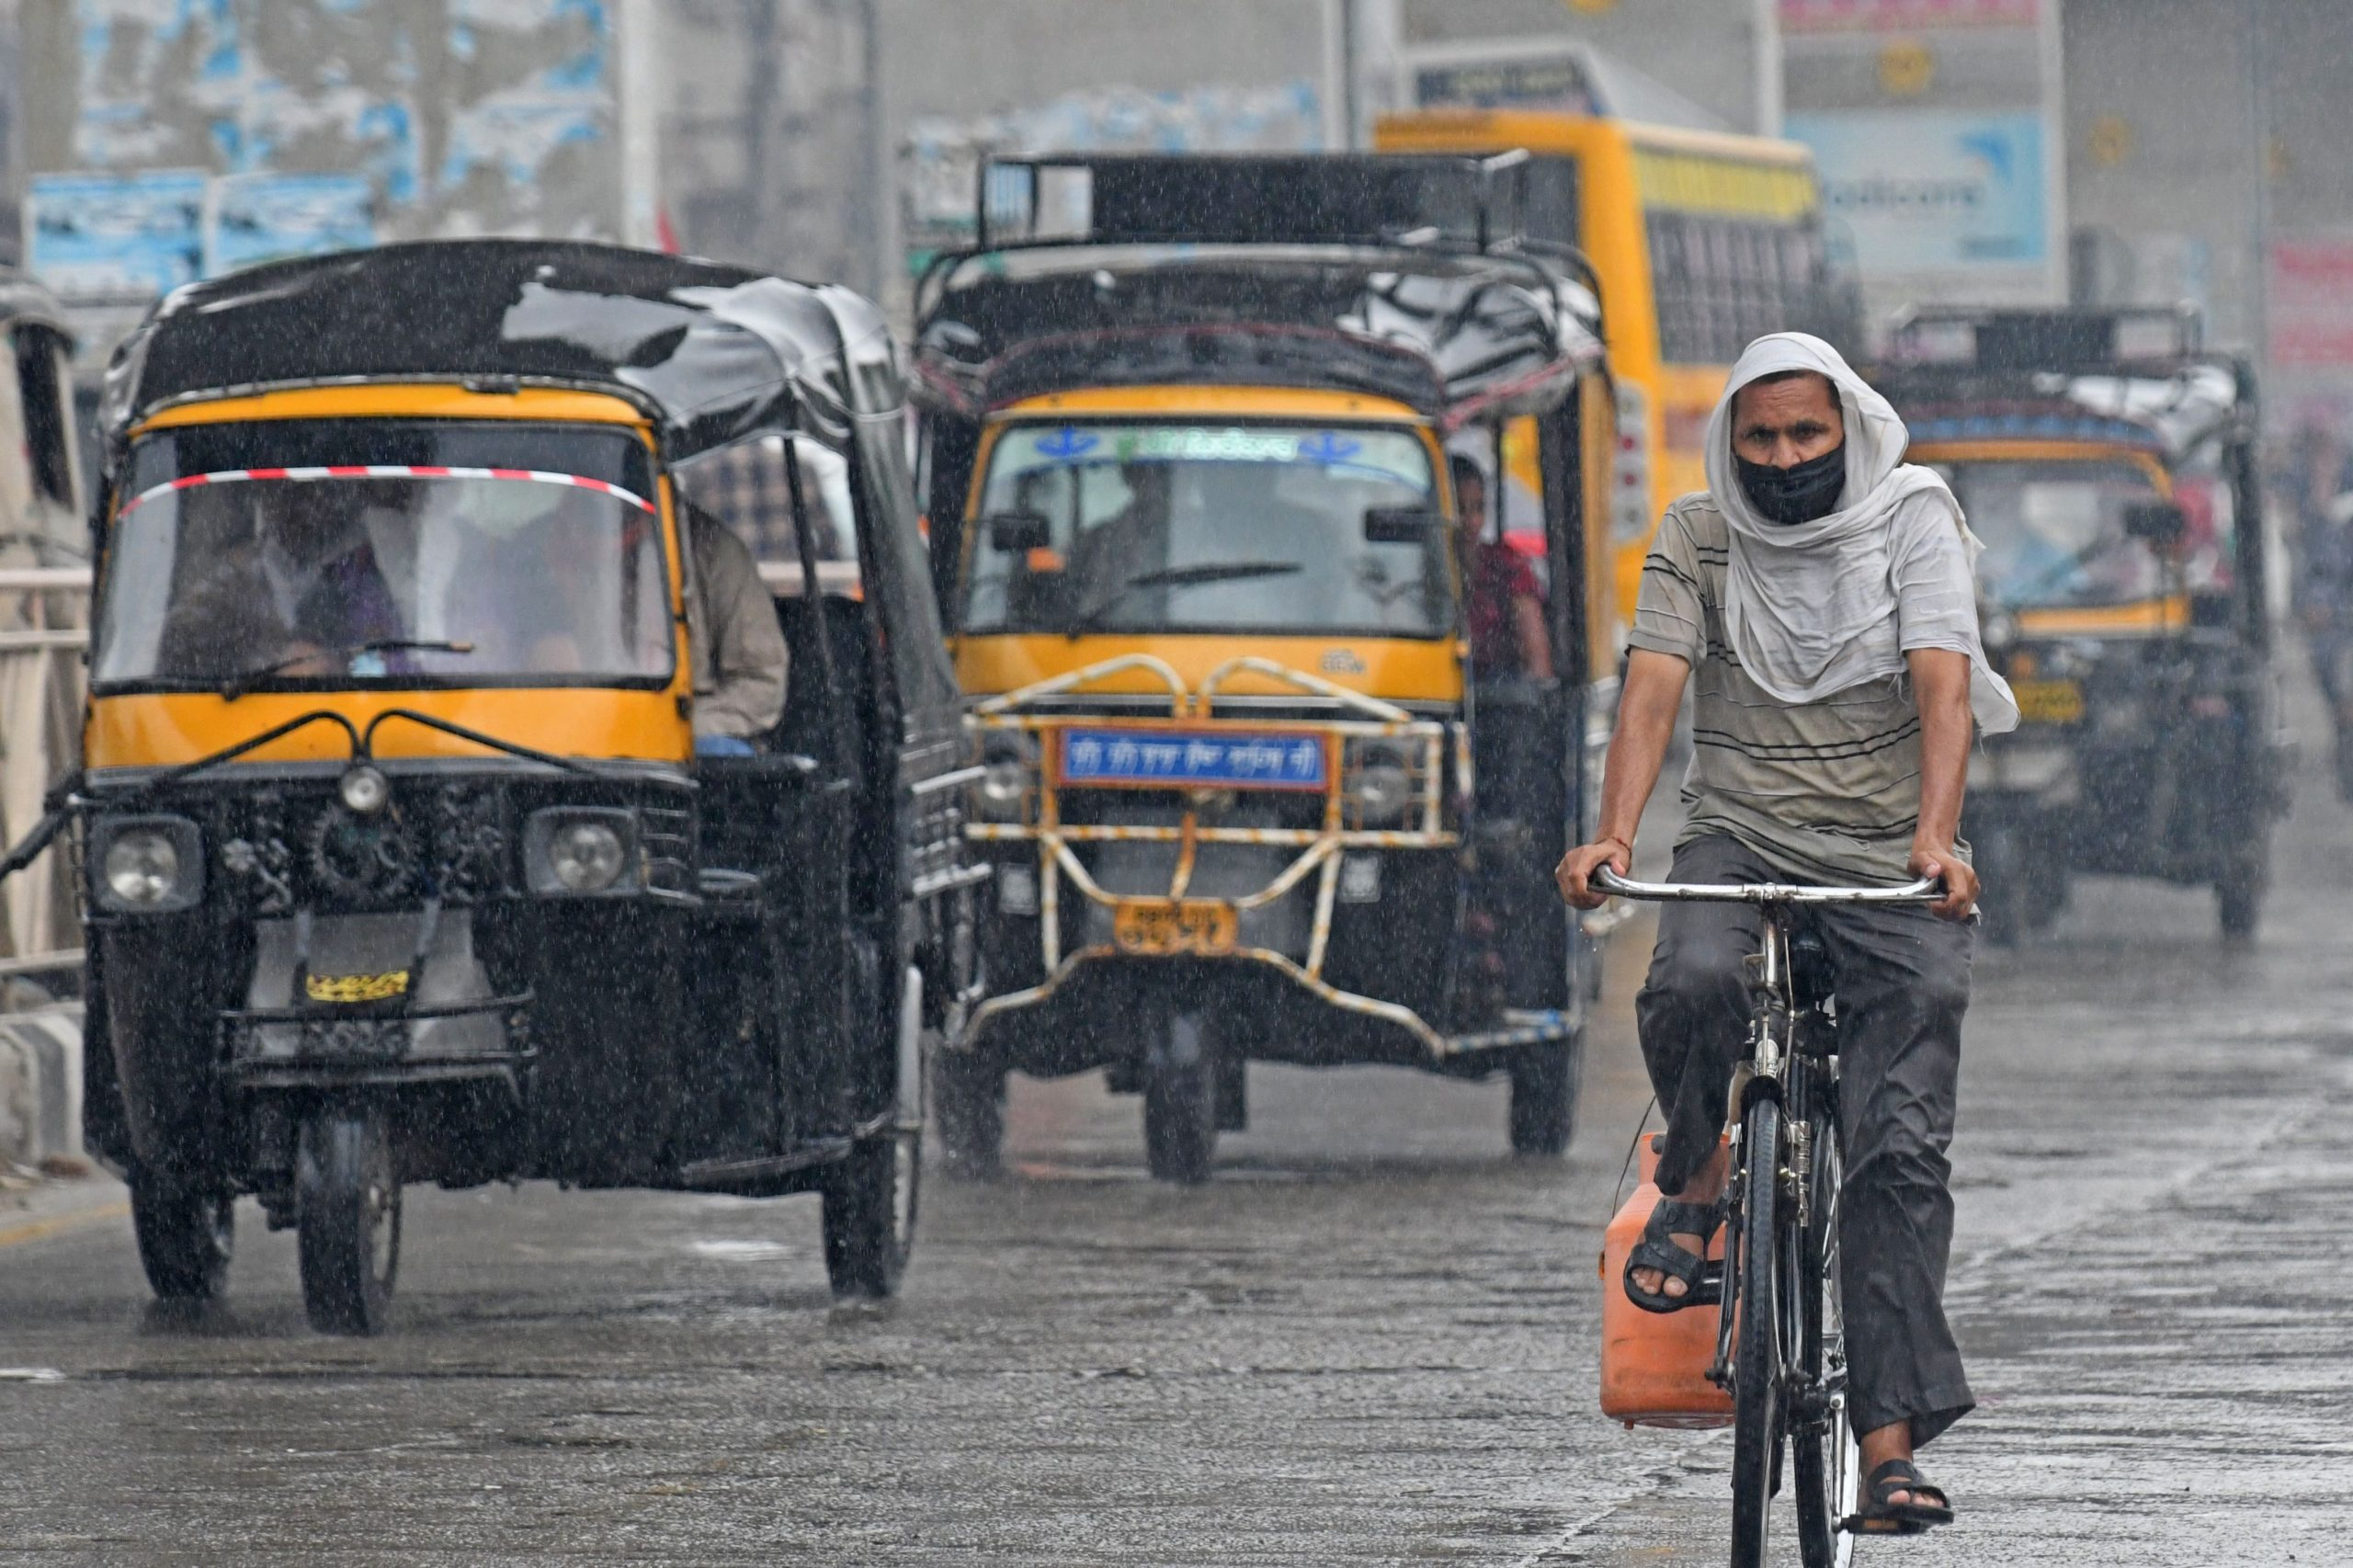 A man rides a bicycle on a busy road during a rain shower in Amritsar on July 21, 2020. - Torrential rains during the monsoon season between June and September trigger floods, landslides and lightning strikes across the region, with hundreds dying every year. (Photo by NARINDER NANU / AFP) (Photo by NARINDER NANU/AFP via Getty Images)